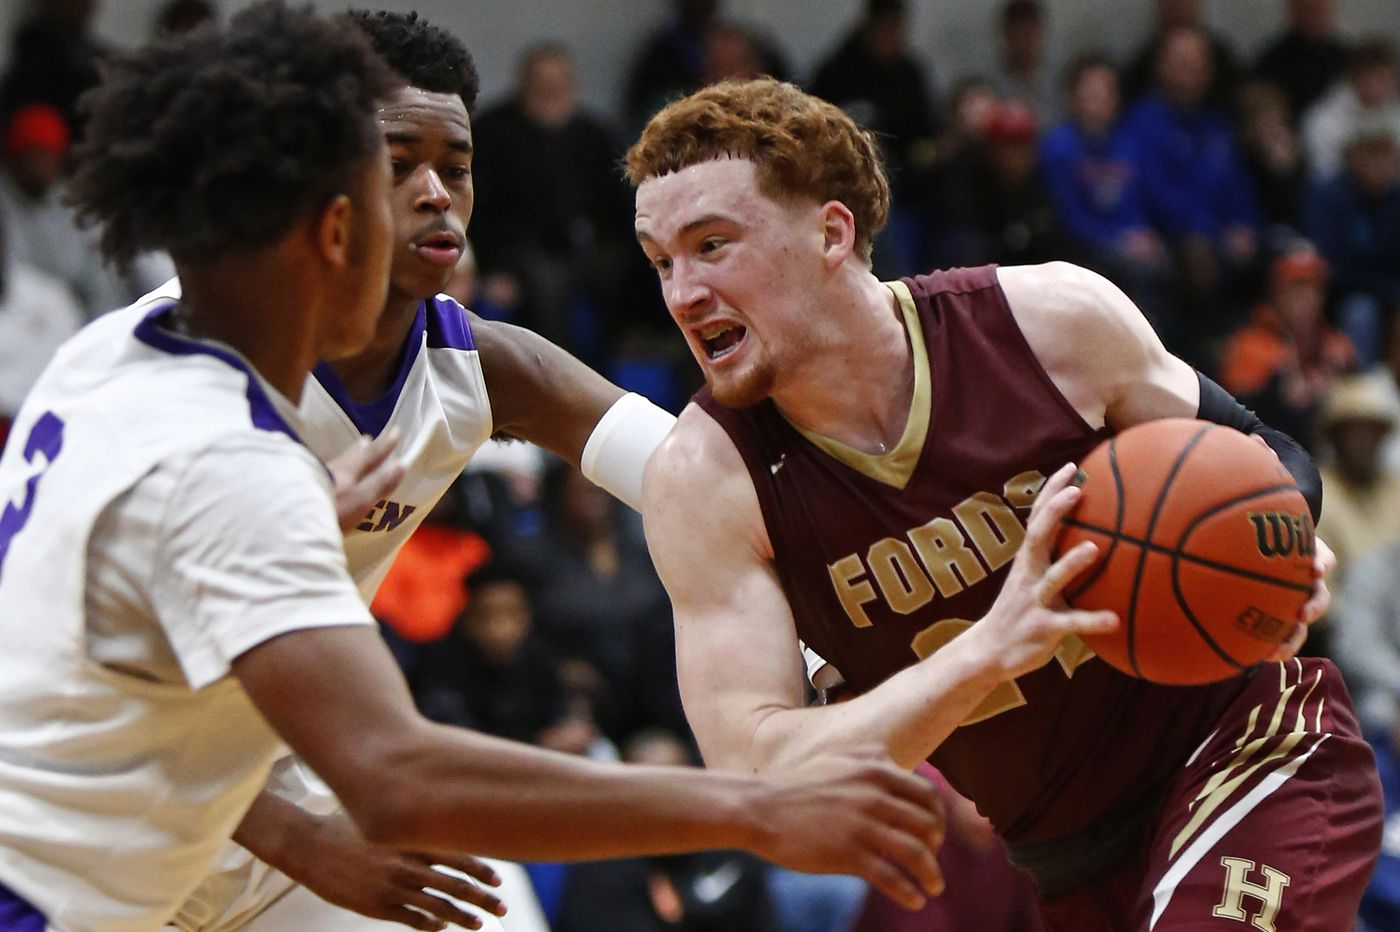 Aaron Carter's 2019 All-City Boys' Basketball Team: Haverford's Christian Ray headlines Philly's best high school players